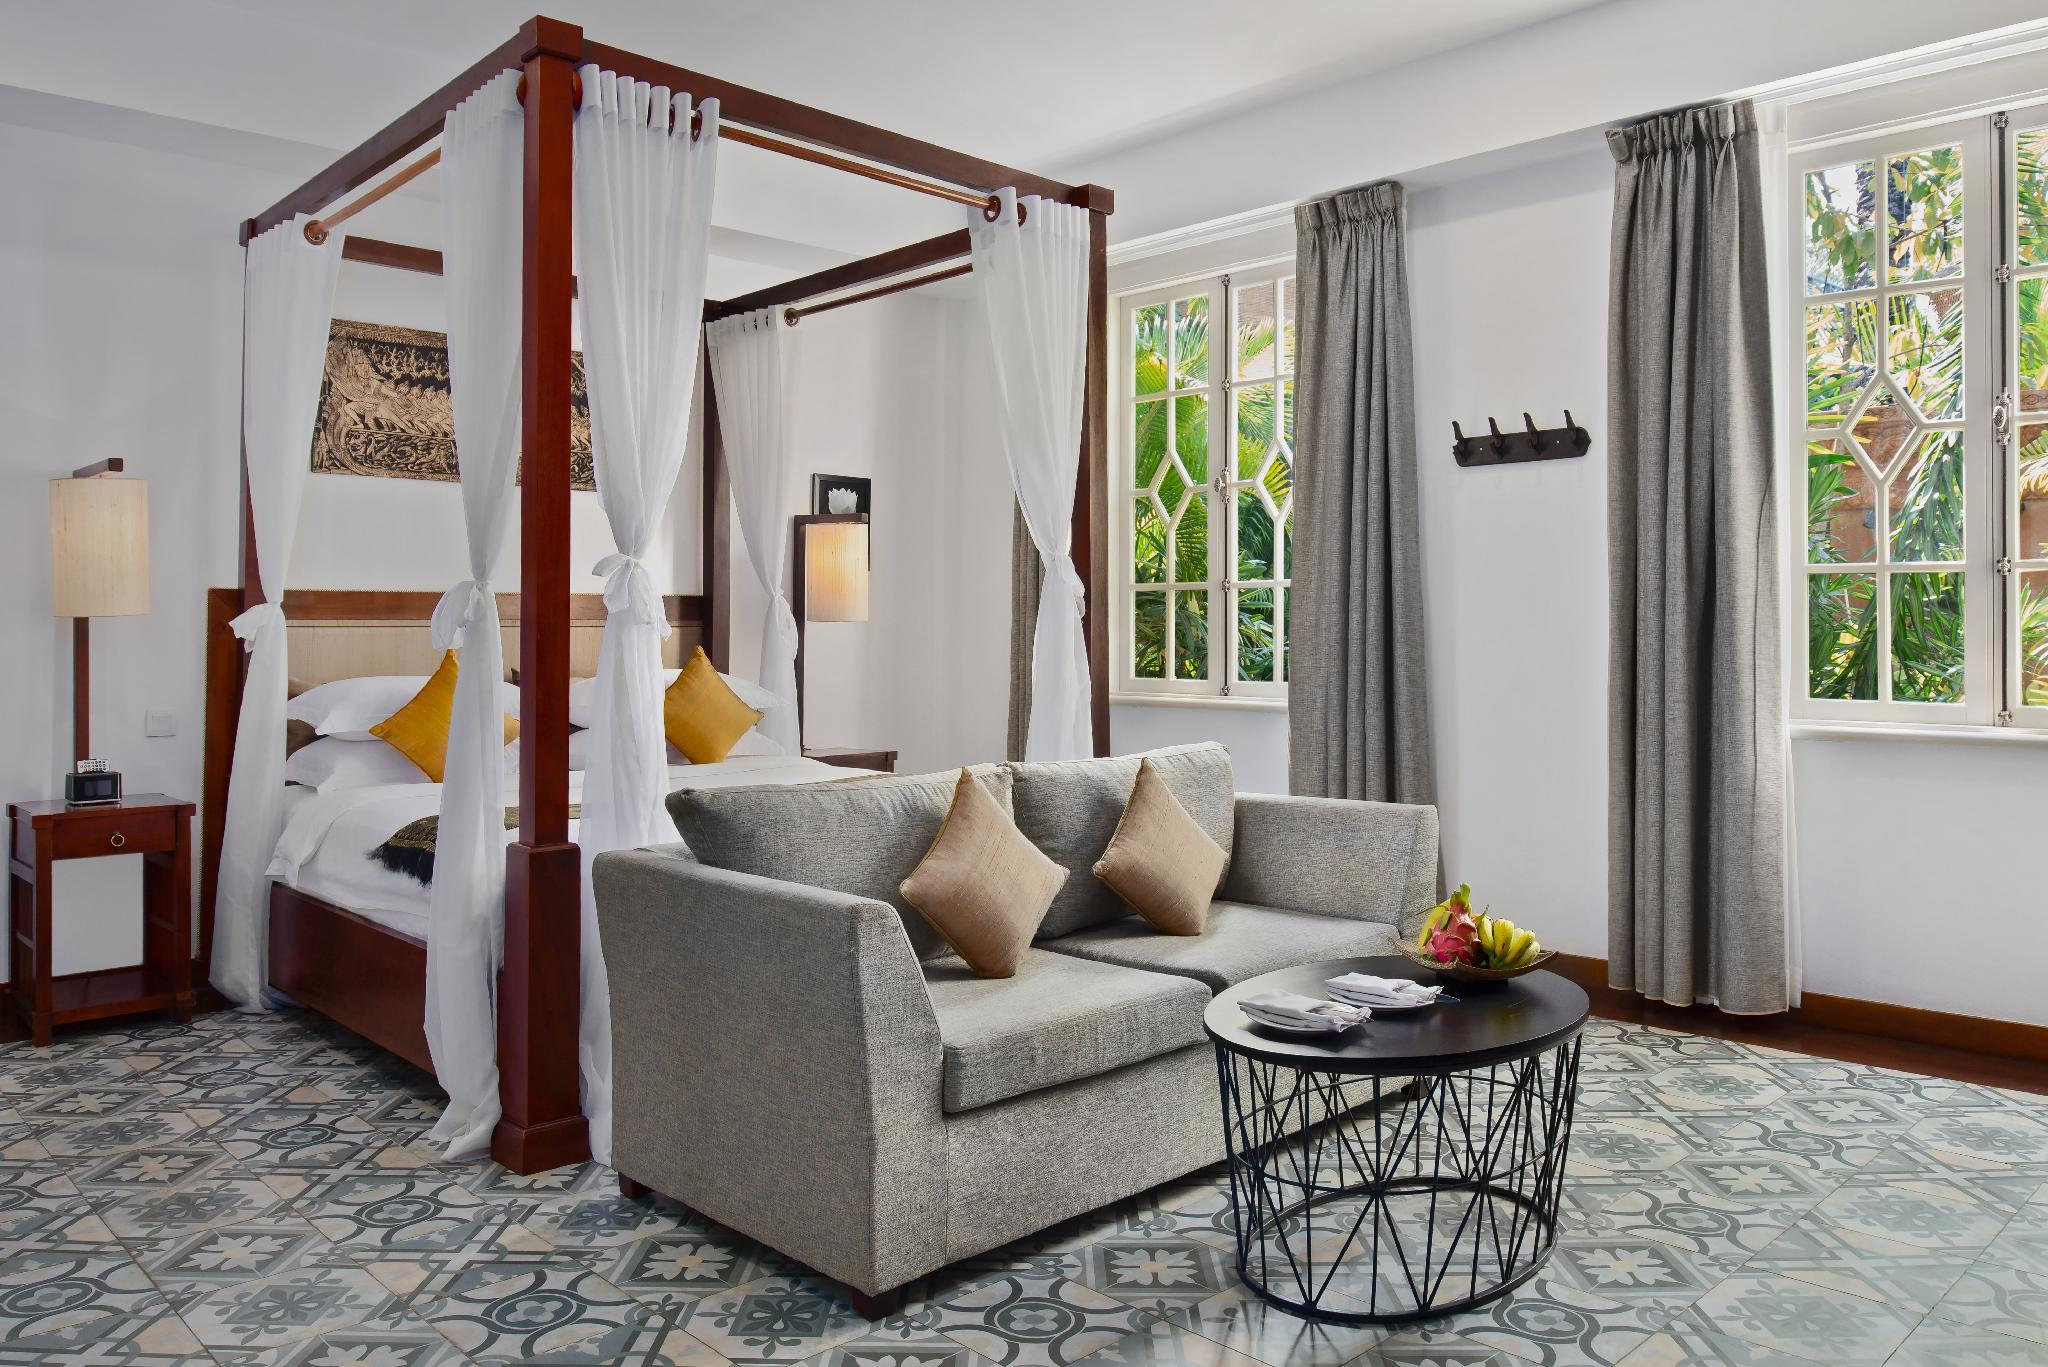 Apsara Suite Room